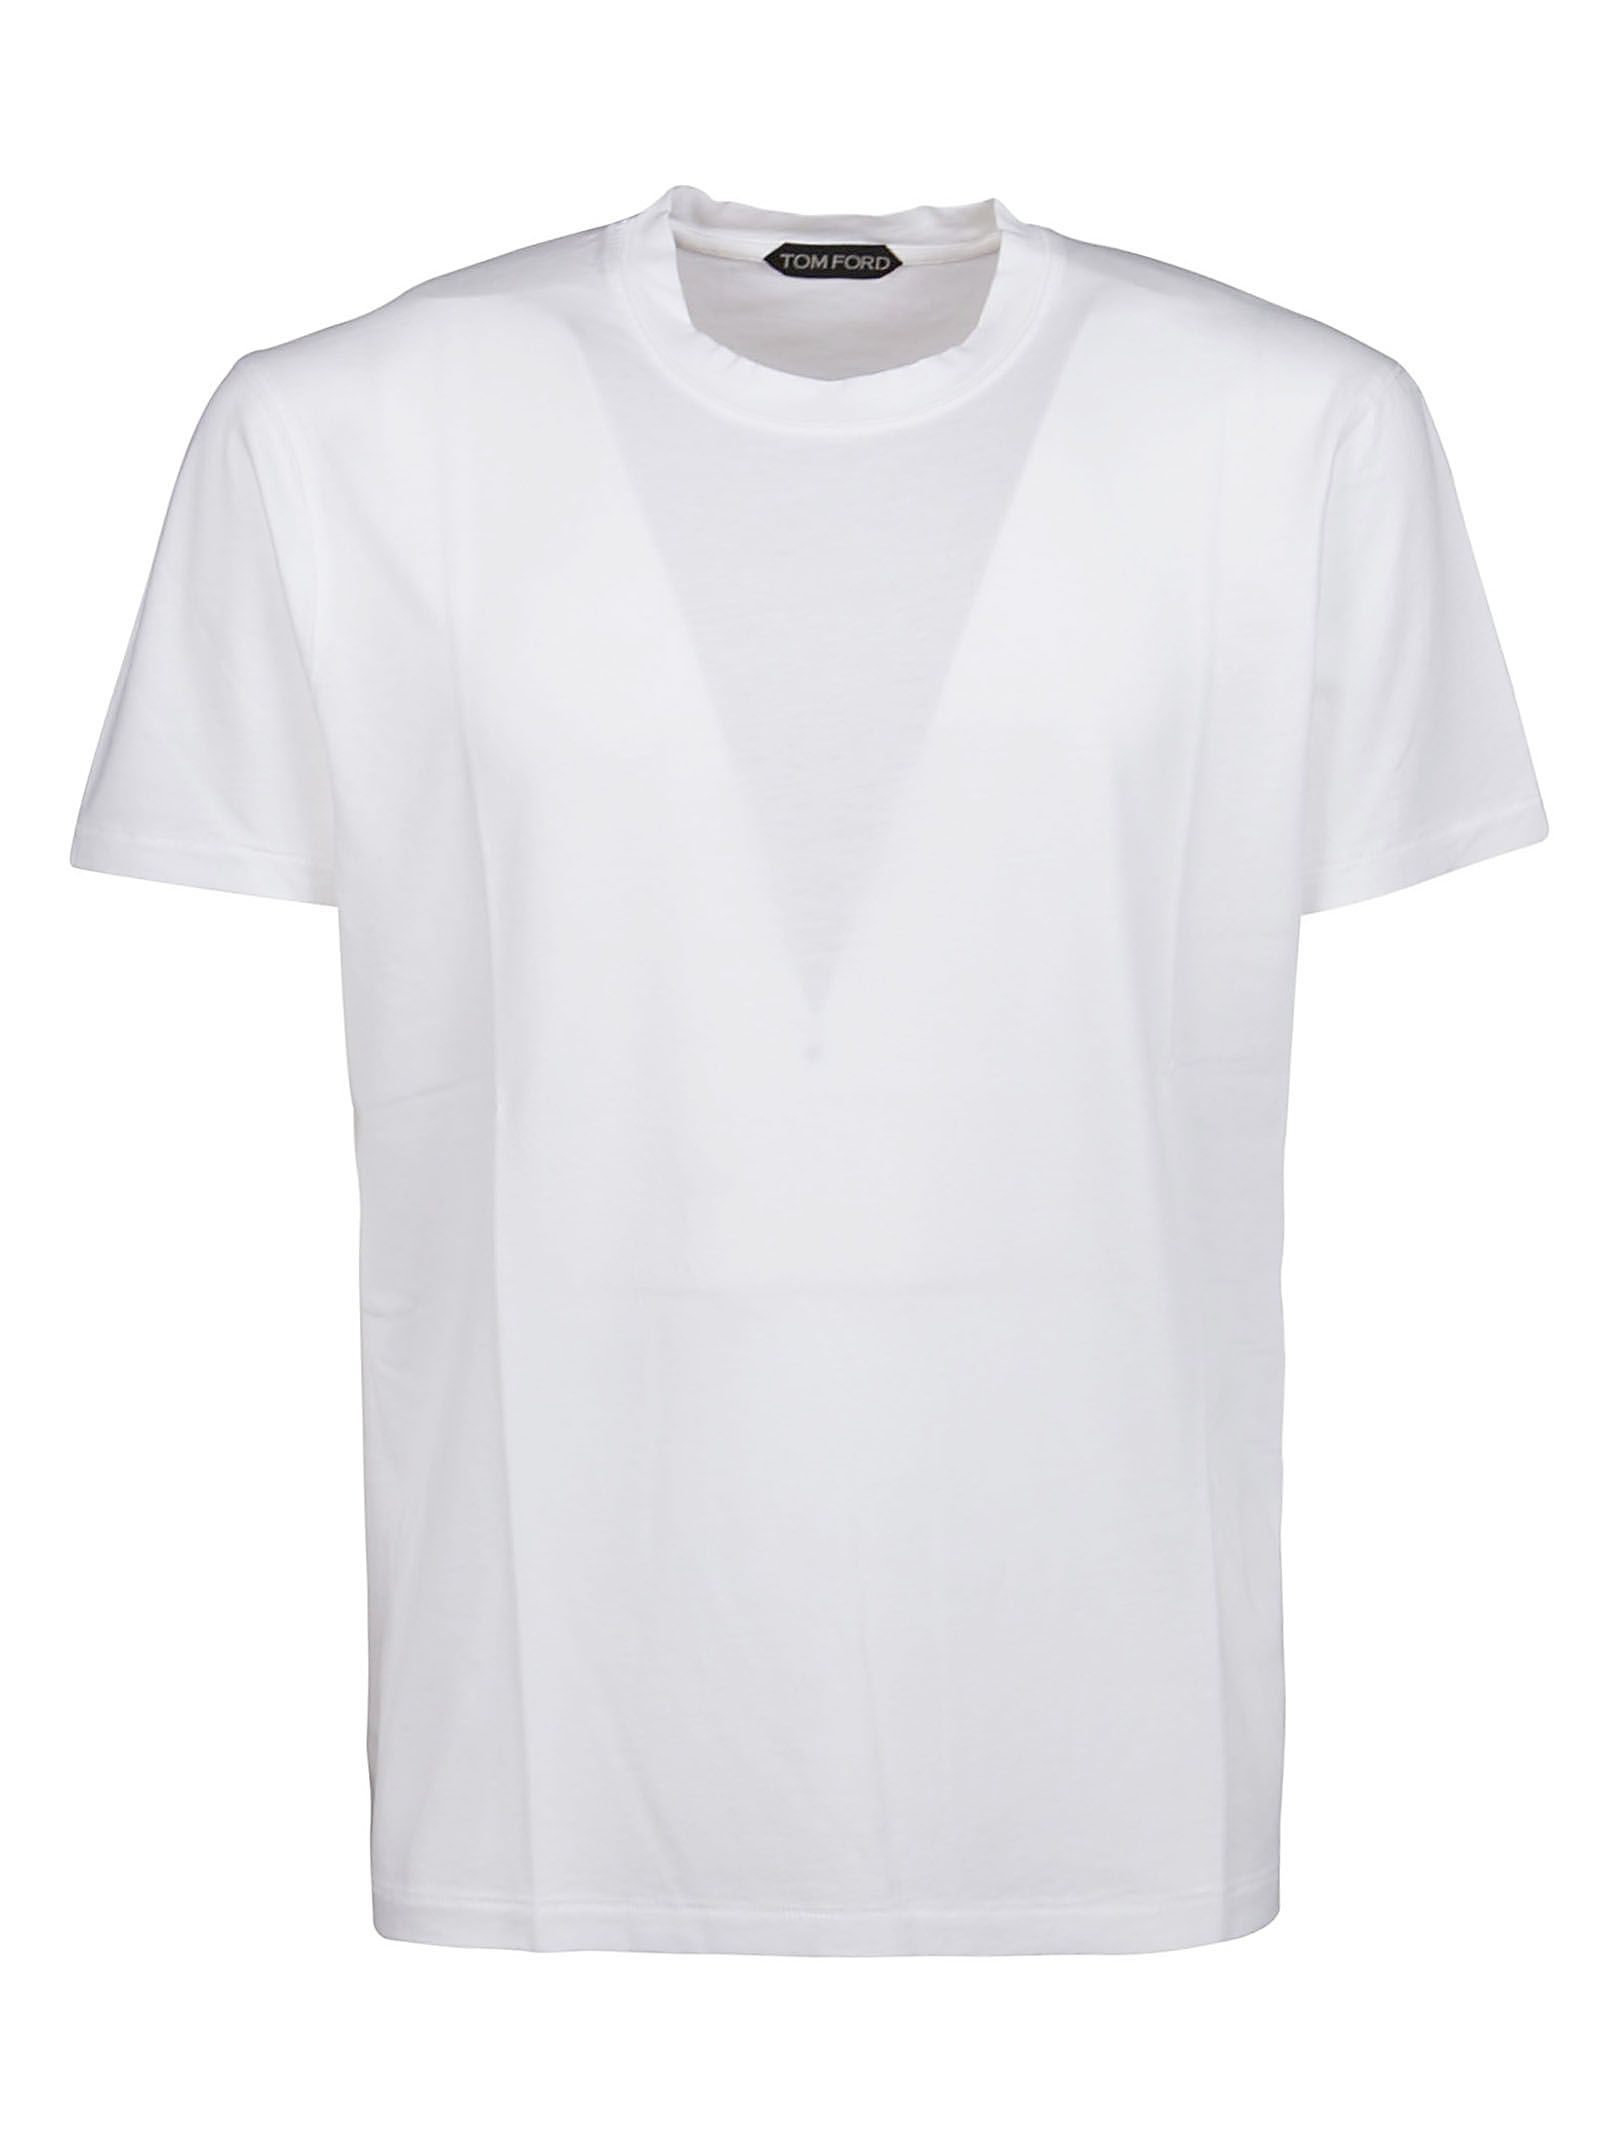 Tom Ford Cottons TOM FORD MEN'S TFJ950BW229N01 WHITE OTHER MATERIALS T-SHIRT